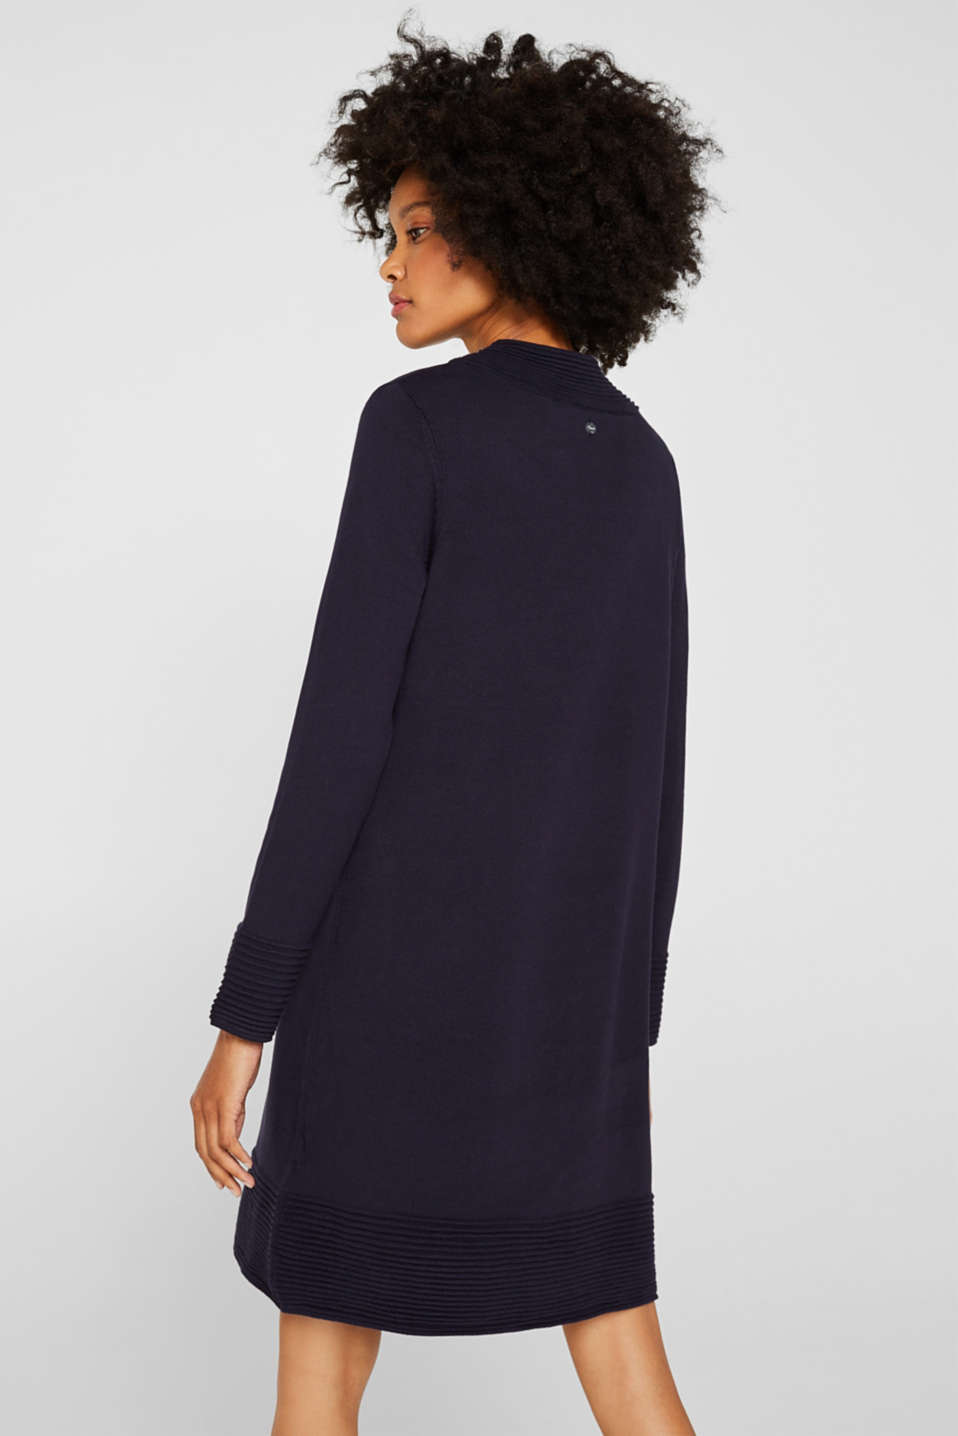 Knit dress with pintucks, NAVY, detail image number 2